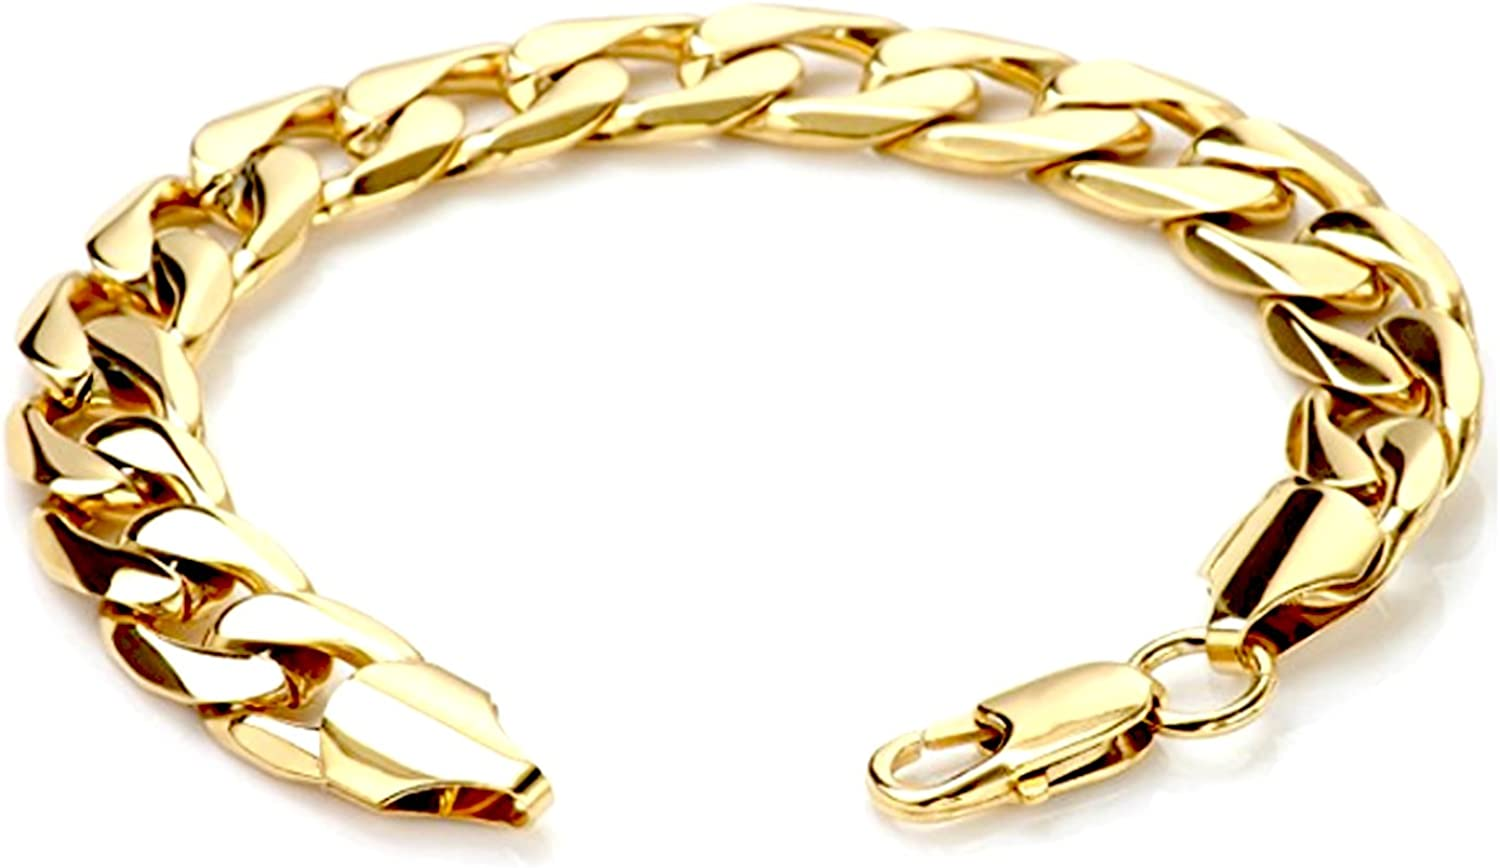 Hollywood Jewelry 11mm Gold Chain Bracelet for Men, Women. Hip Hop Miami Cuban Link 20X More 24k Plating Than Other Chain - The Look & Feel of Solid Gold - Free Lifetime Replacement Guarantee